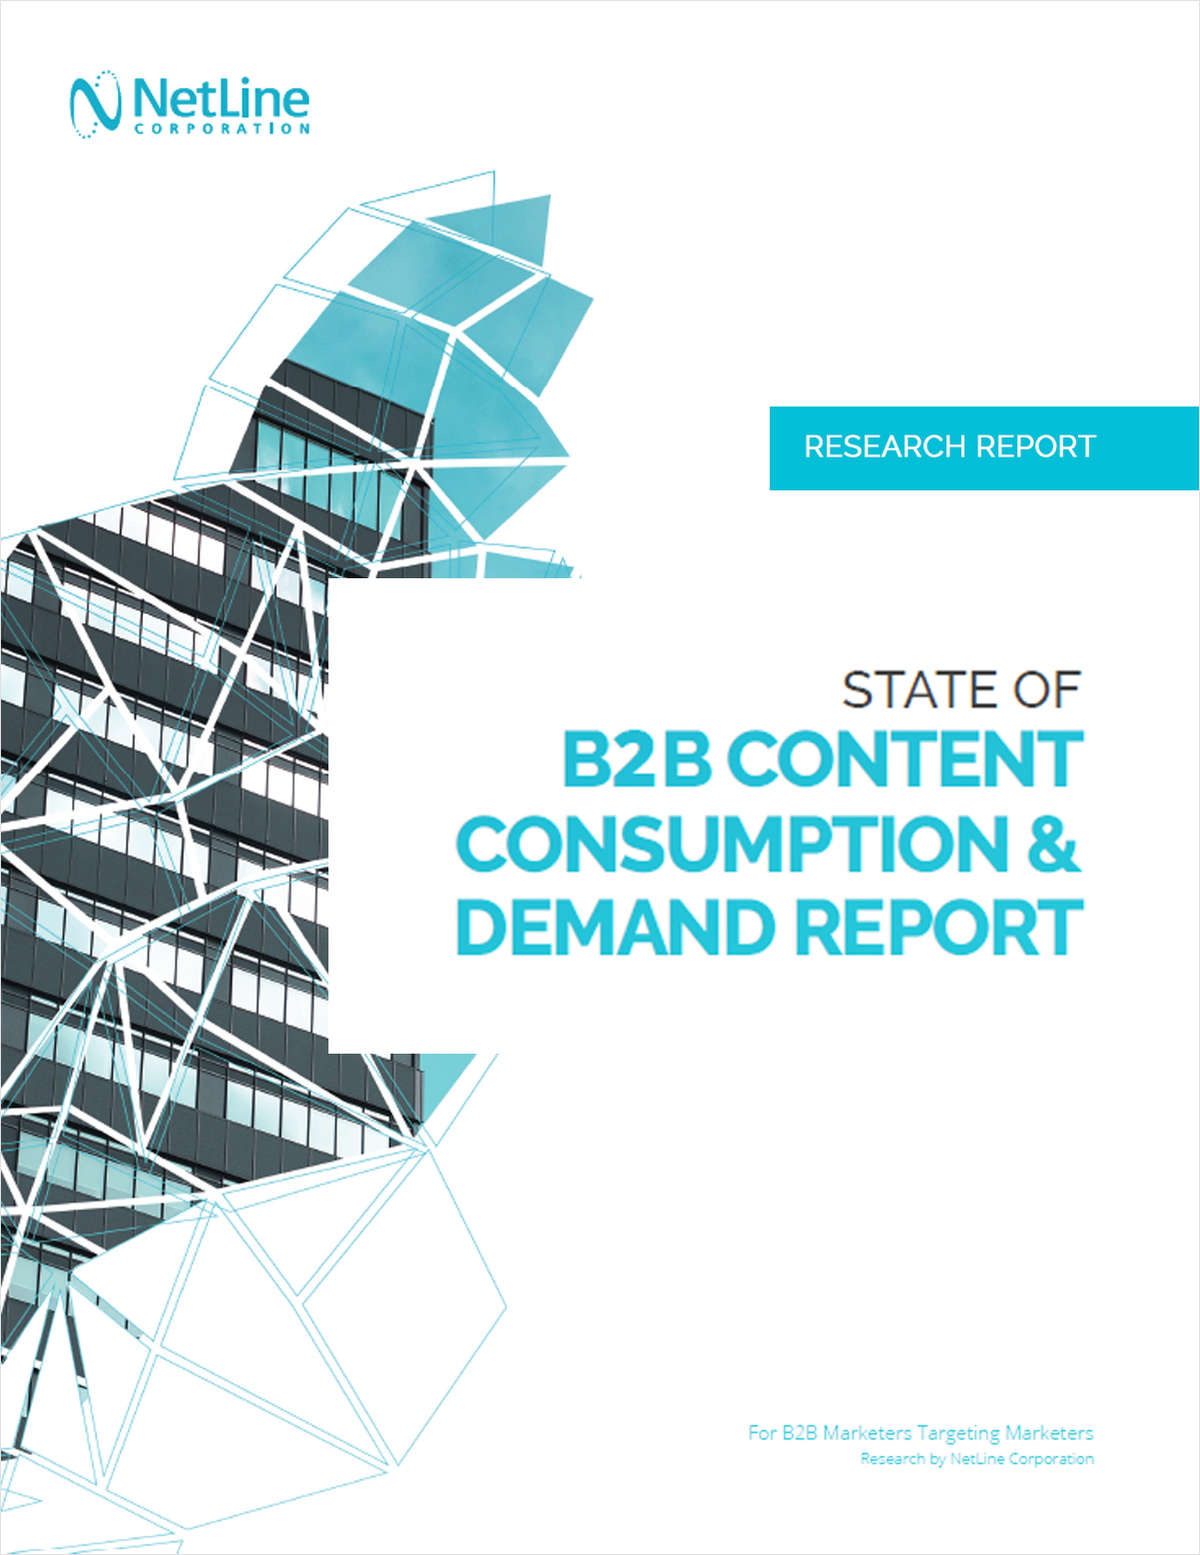 2018 State of B2B Content Consumption and Demand Report for Marketers